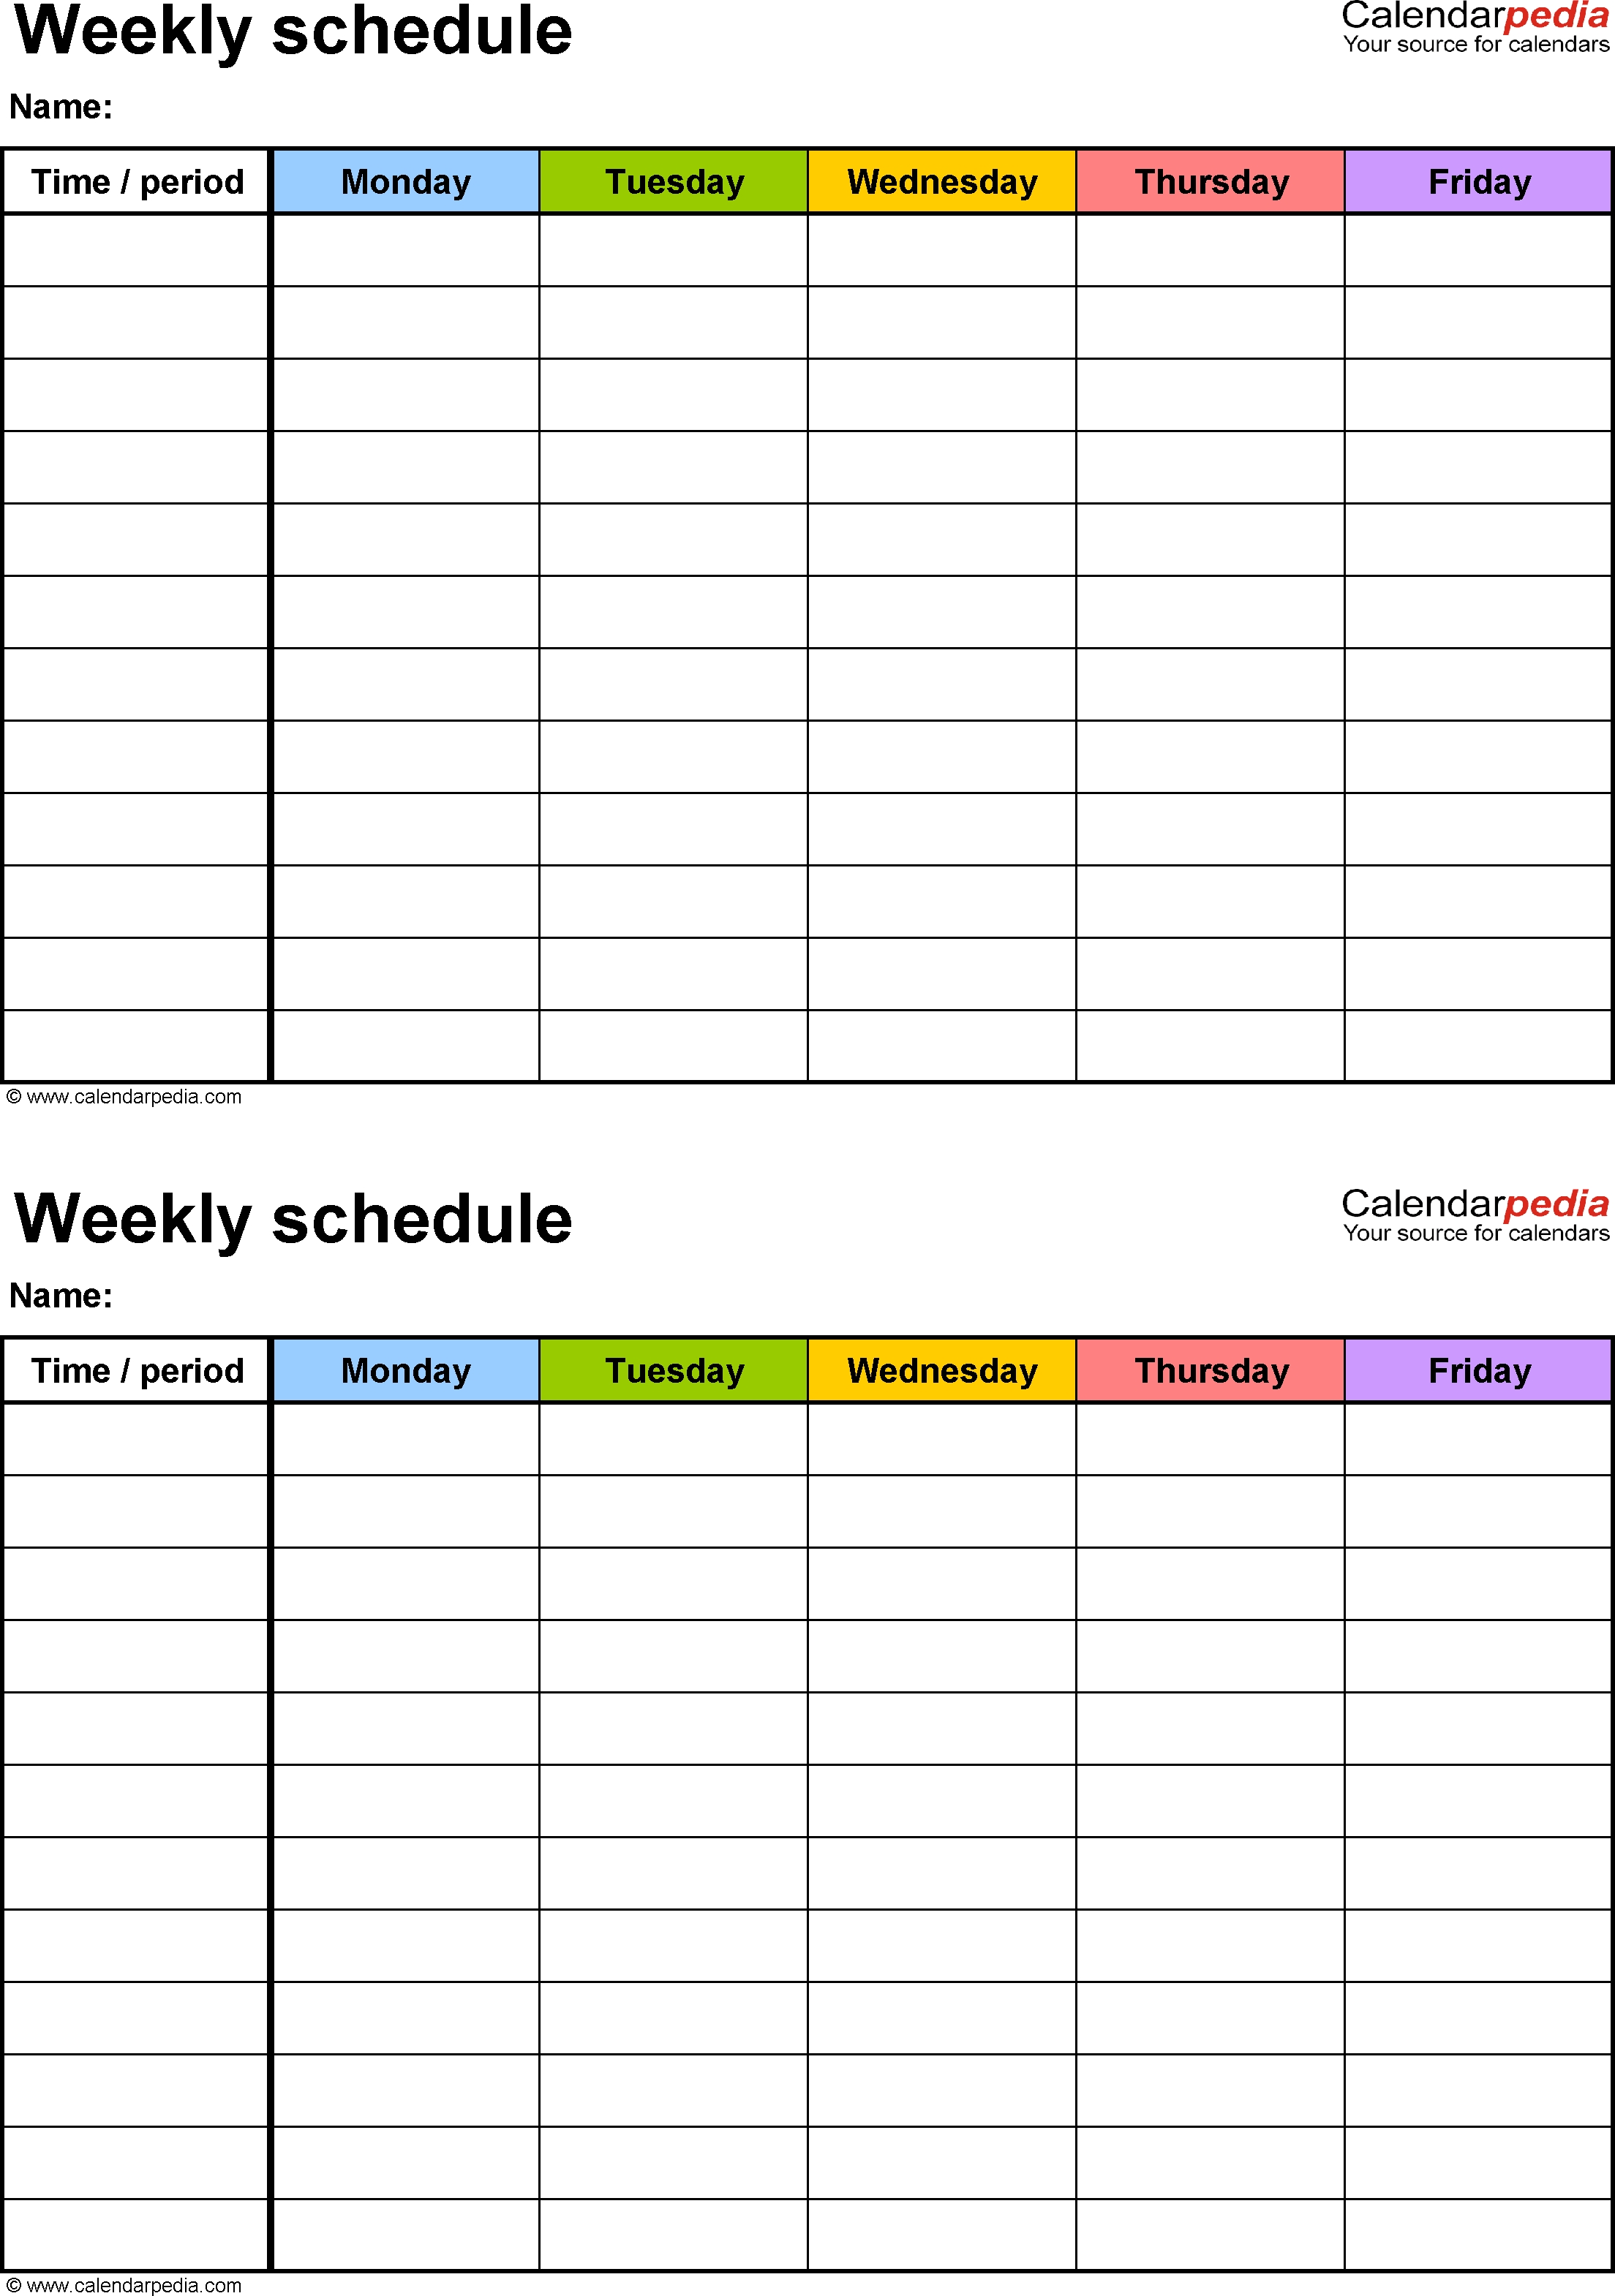 Free Weekly Schedule Templates For Word - 18 Templates-Downloadable Monday Thru Friday Calendar Template